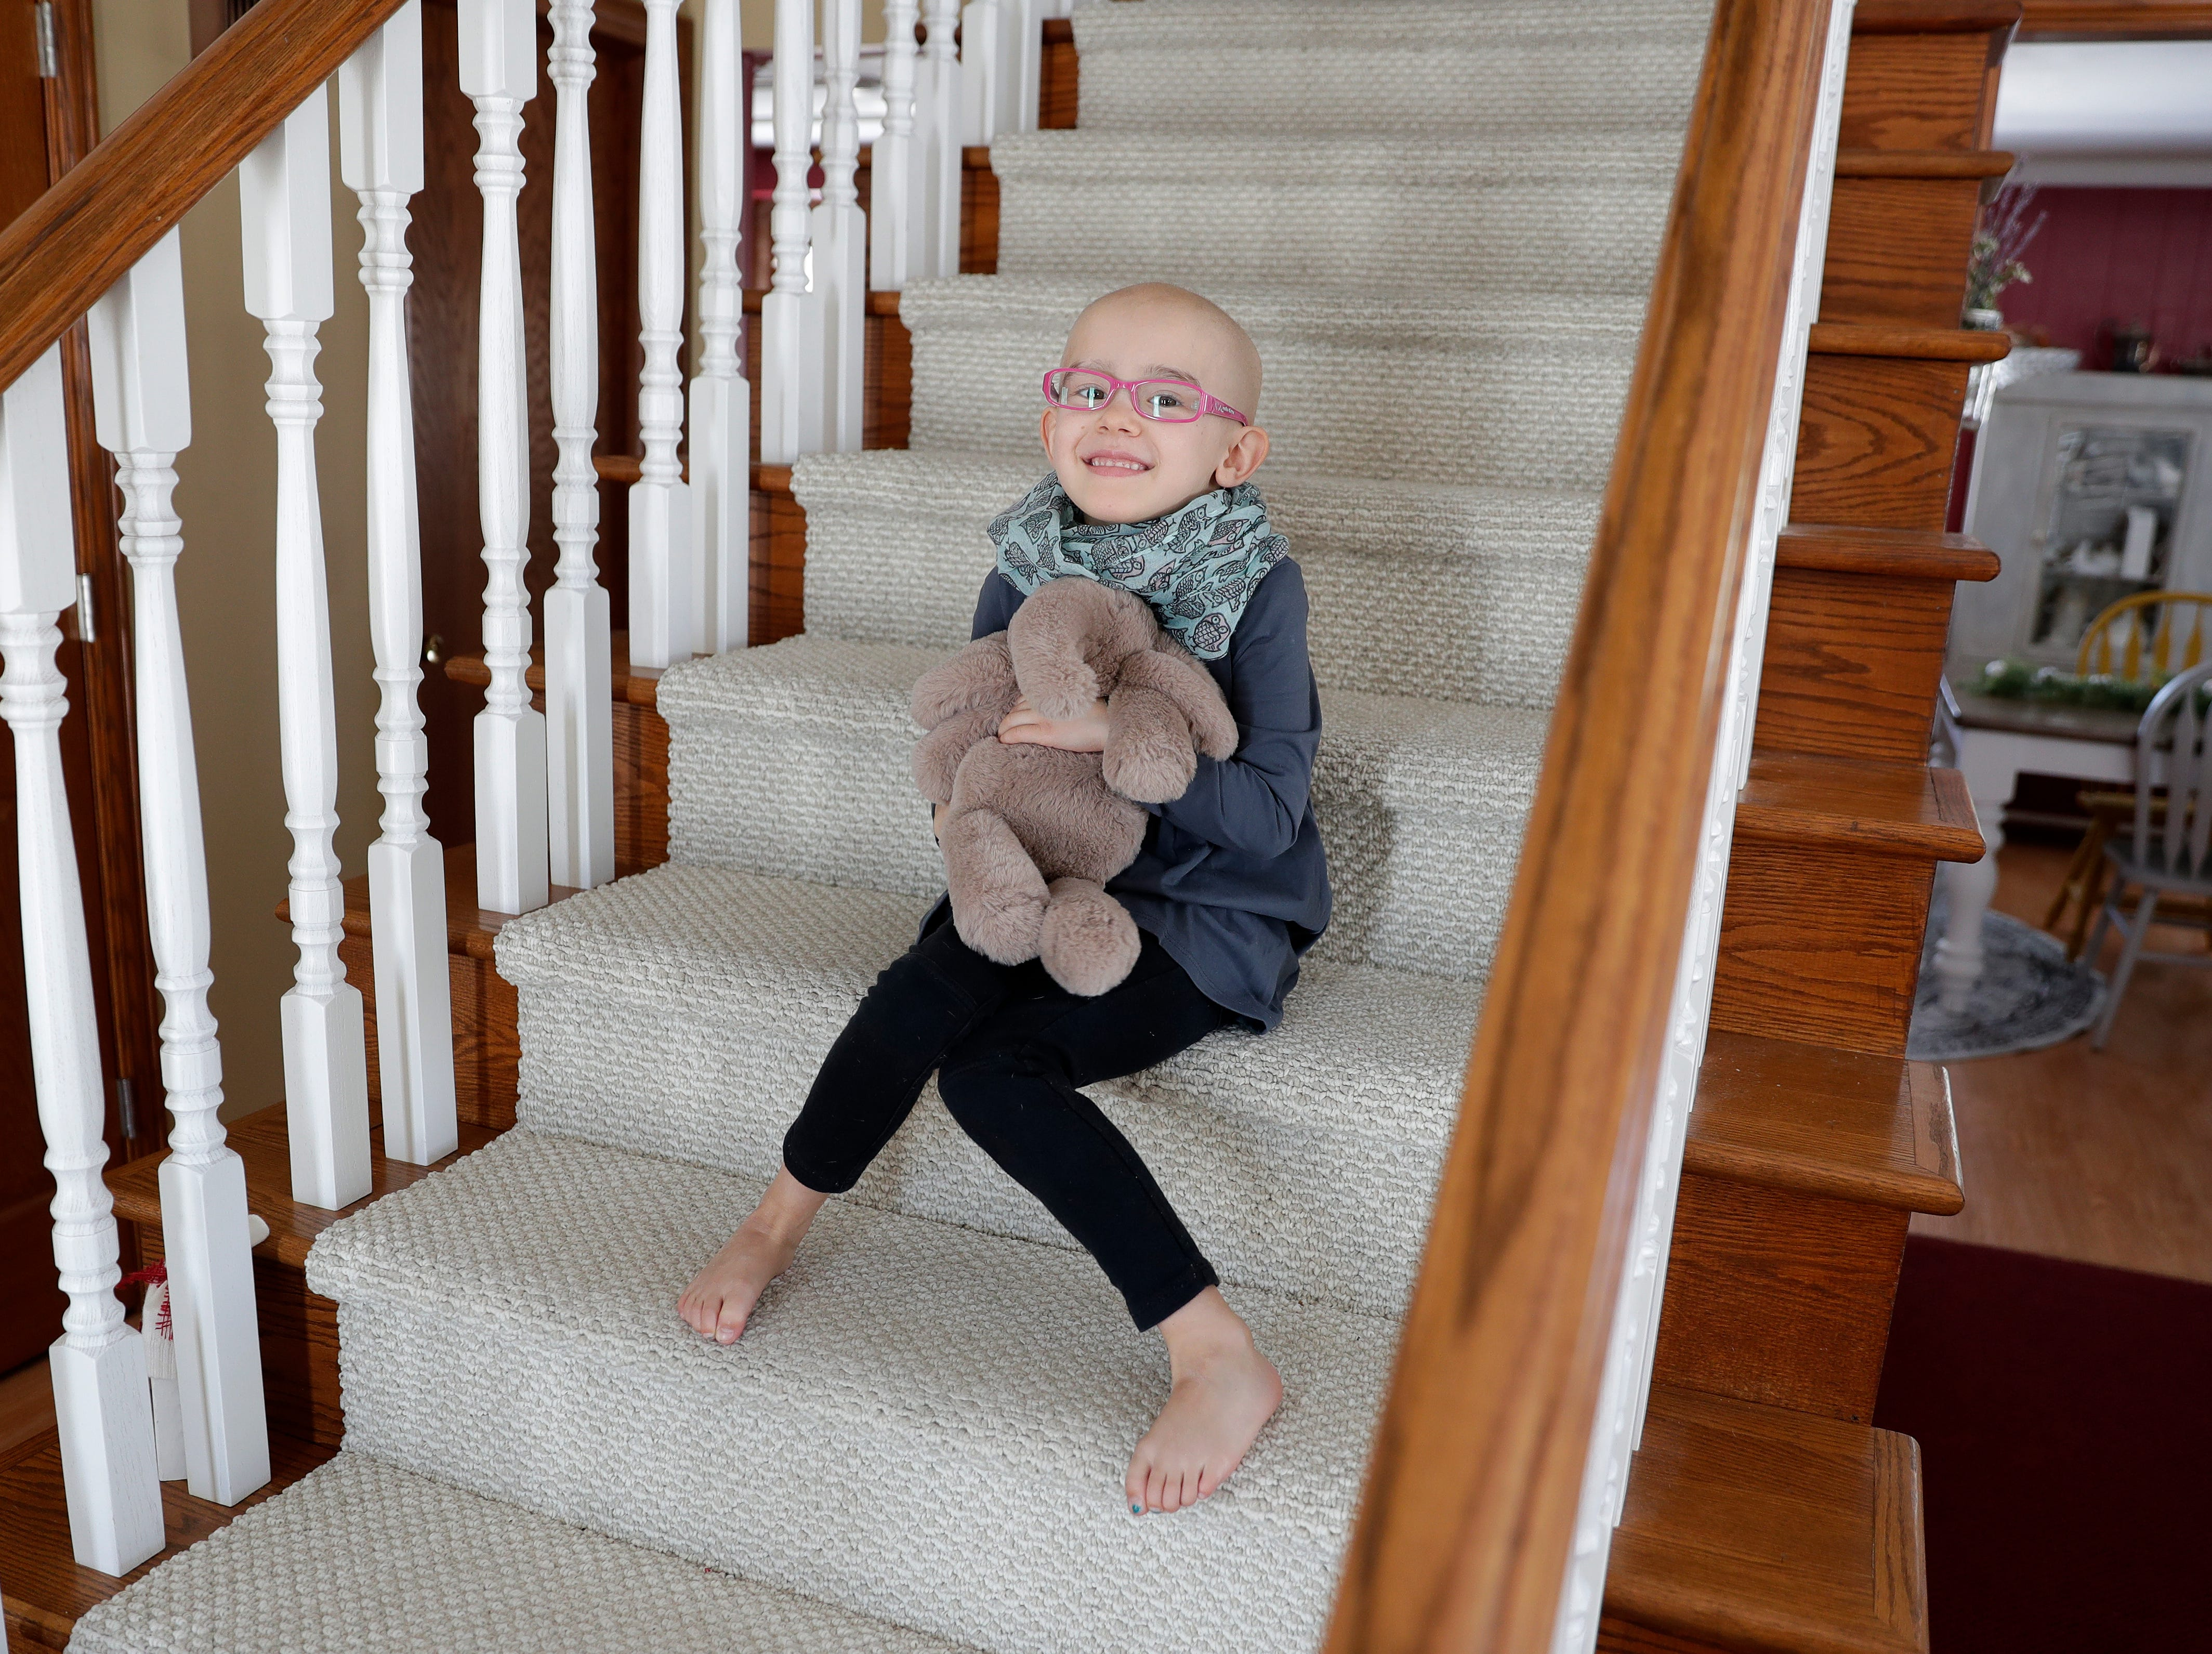 Lily Wertel, 6, sits on the staircase of her family's home in Wrightstown, Wis. with her stuffed elephant, Toby. A benefit for Lily, who has cancer, is scheduled for May 19, 2019, at the Riverside Ballroom in Green Bay, Wis.